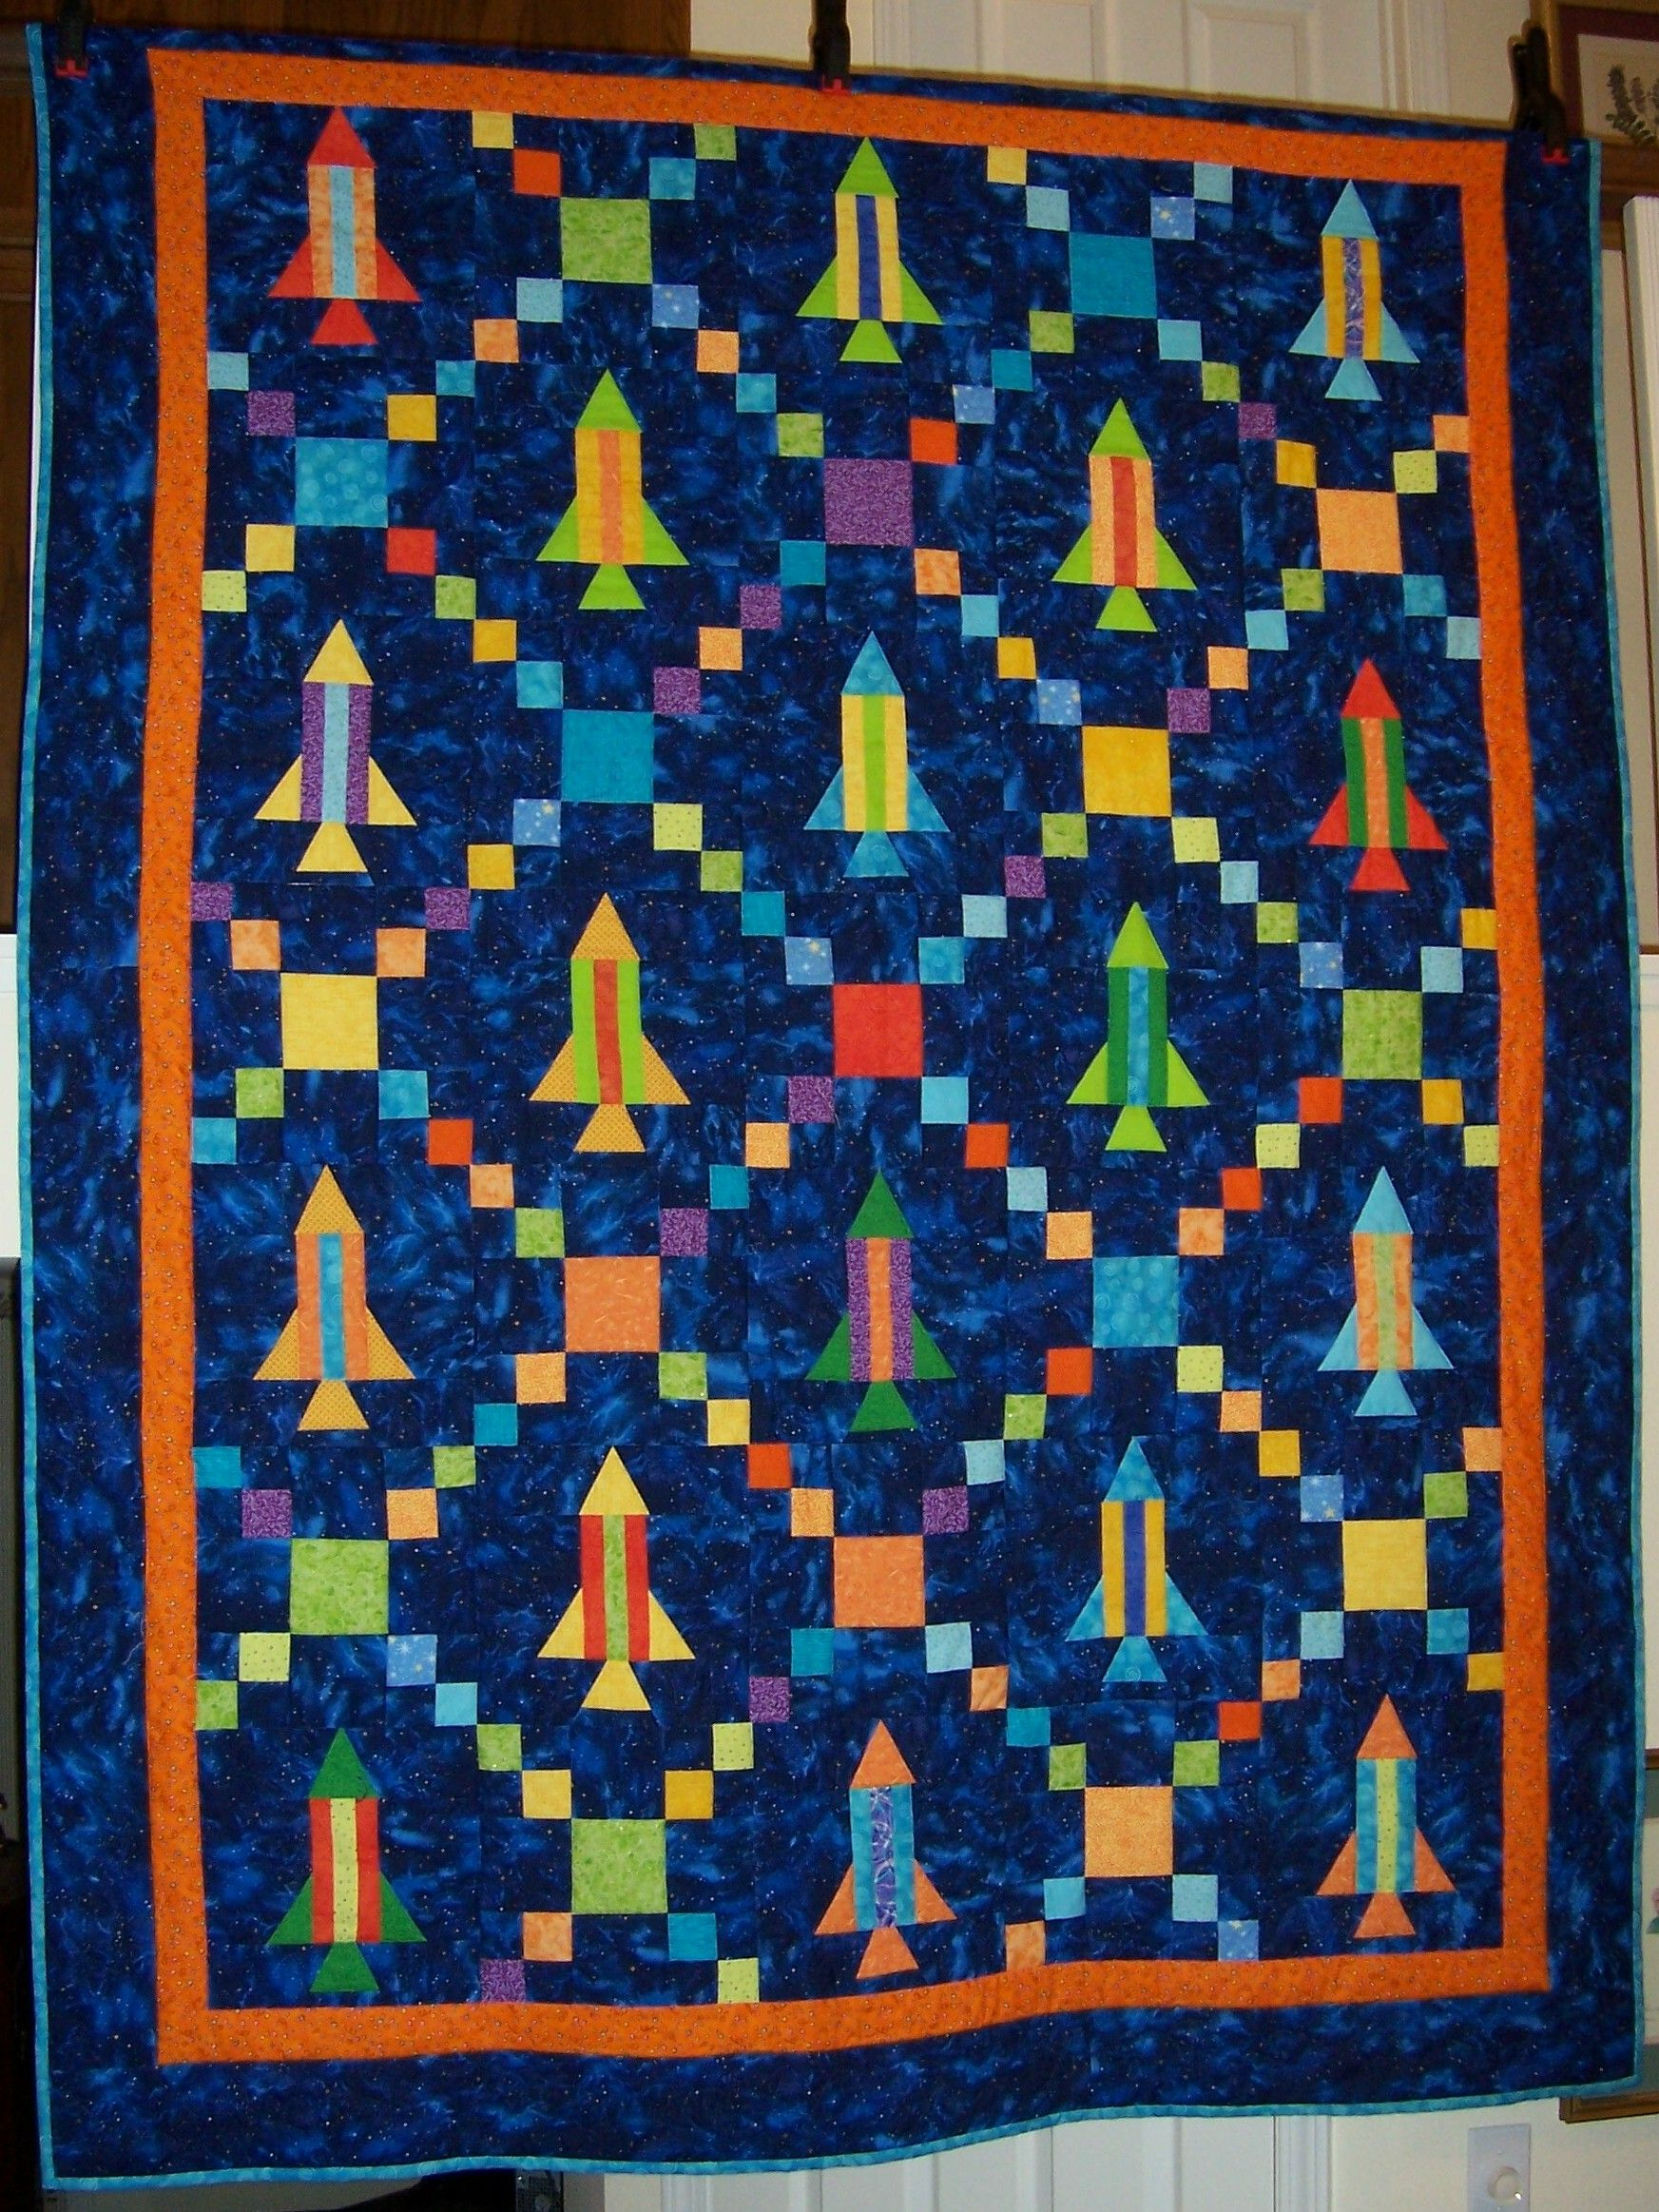 space shuttle quilt pattern - photo #2